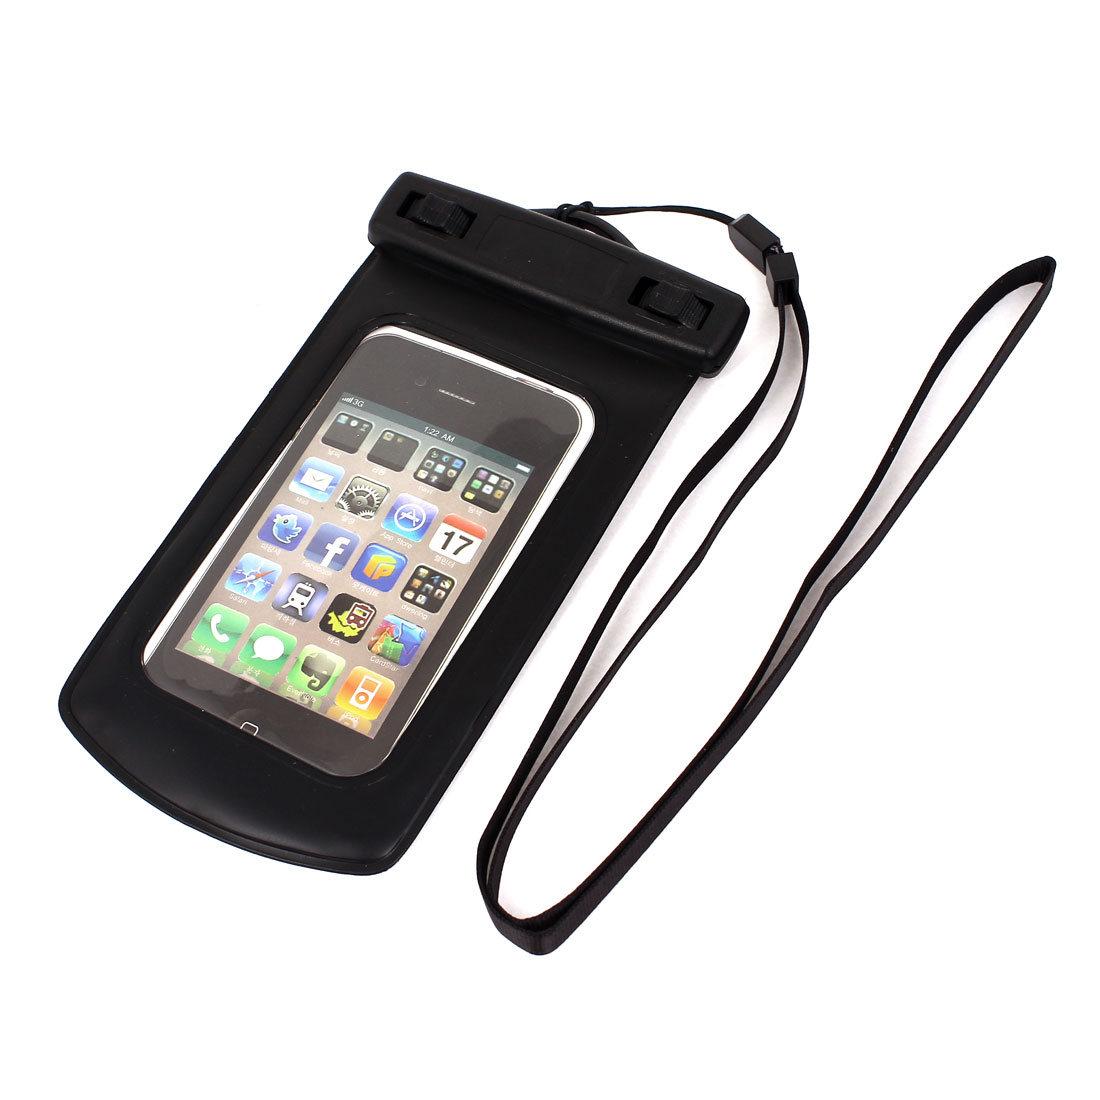 "Underwater Waterproof Dry Bag Cover Pouch Case Black for 4"" Cell Phone"